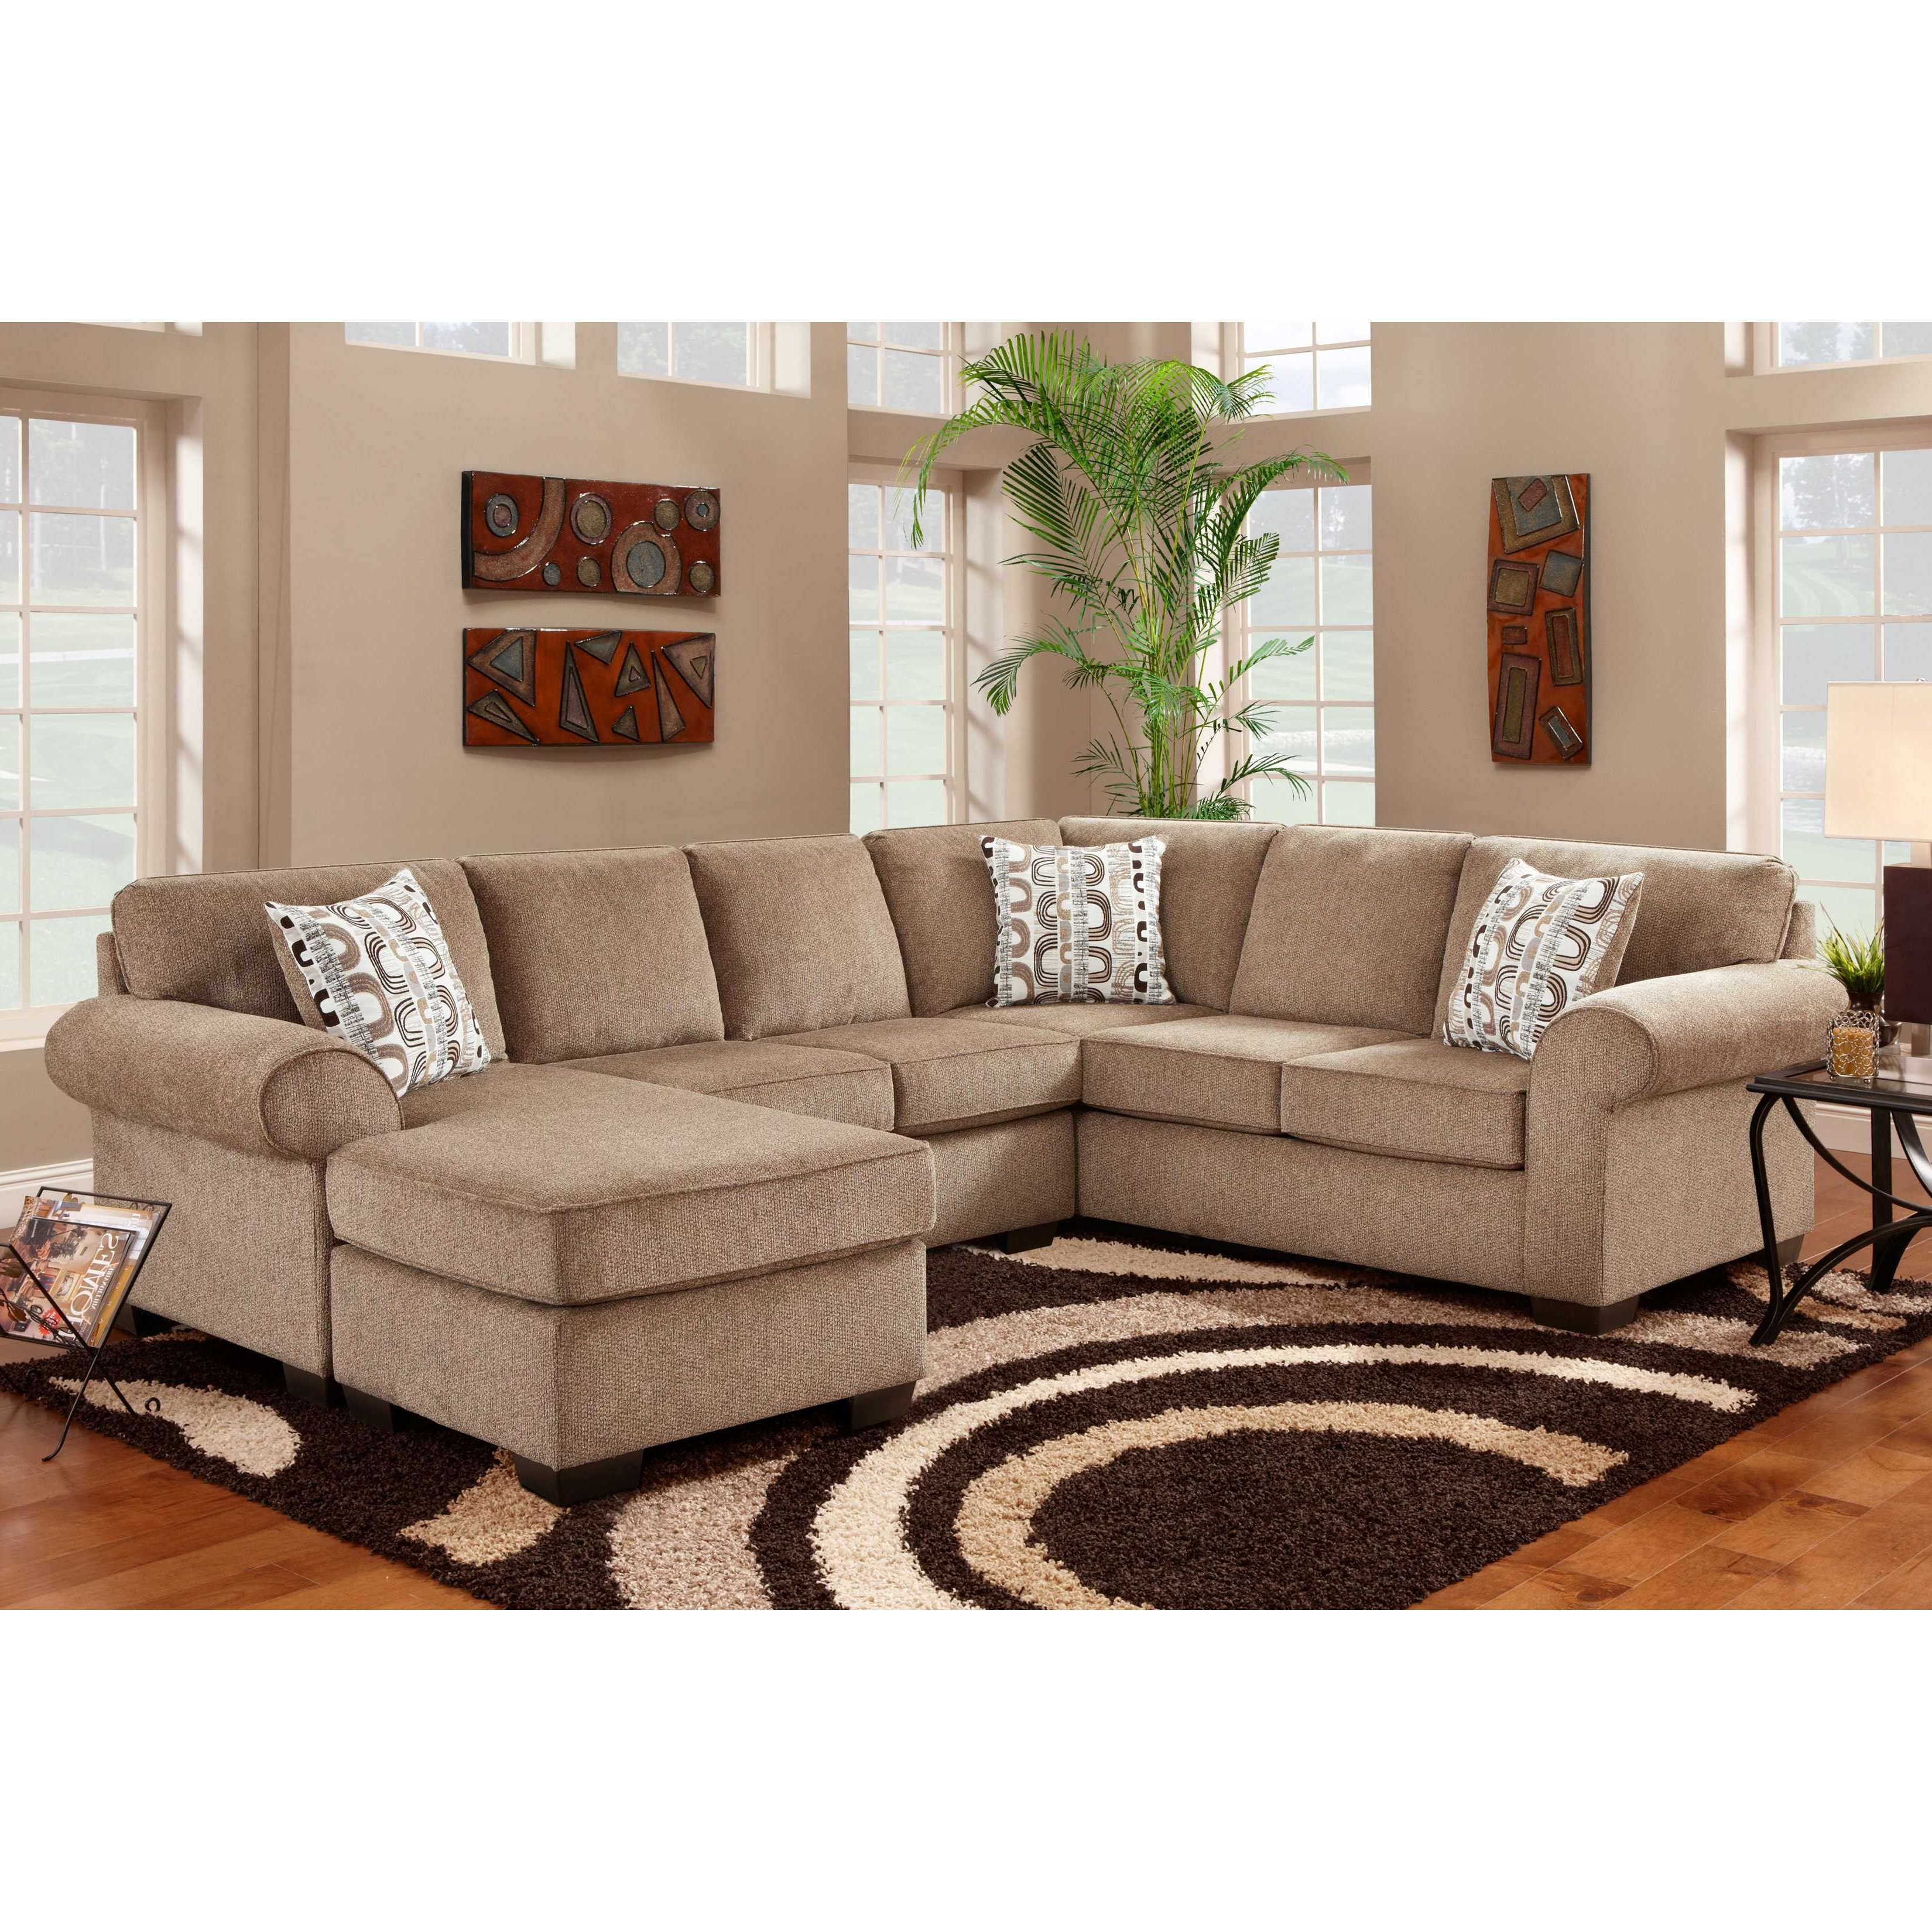 2018 Sectional Sofas Under 500 With Regard To Stunning Cheap Sectional Sofas Under 500 Trends Including Palm (View 19 of 20)